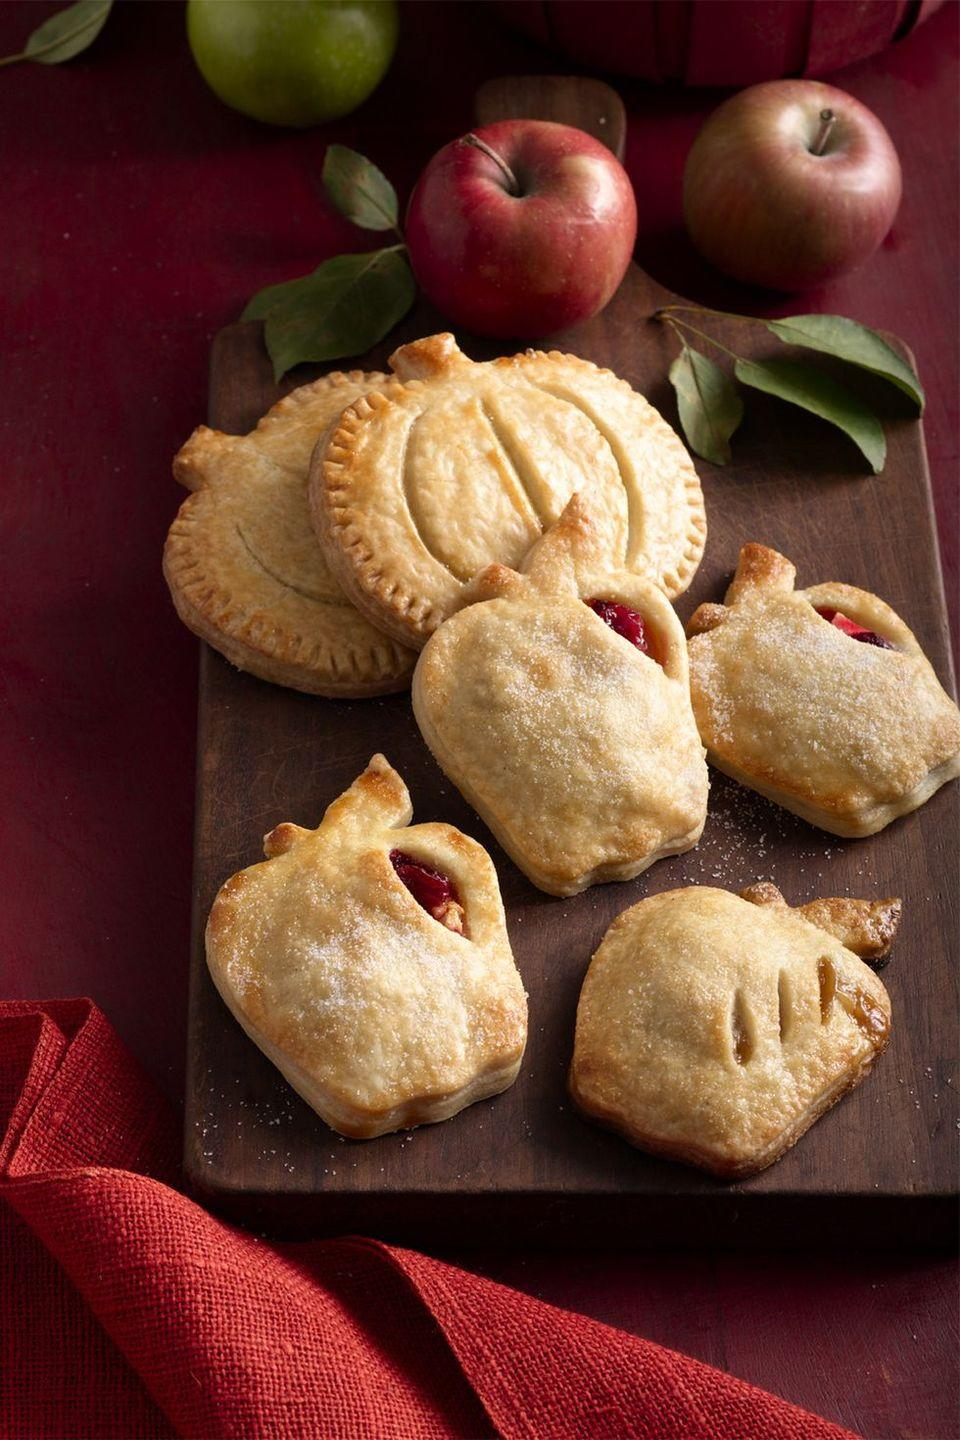 "<p>No need to bring out the plates and forks (read: more dishes to clean) when you can eat these pies with your hands. </p><p><em><a href=""https://www.womansday.com/food-recipes/food-drinks/recipes/a60186/apple-cranberry-hand-pies/"" rel=""nofollow noopener"" target=""_blank"" data-ylk=""slk:Get the recipe from Woman's Day »"" class=""link rapid-noclick-resp"">Get the recipe from Woman's Day »</a></em></p>"